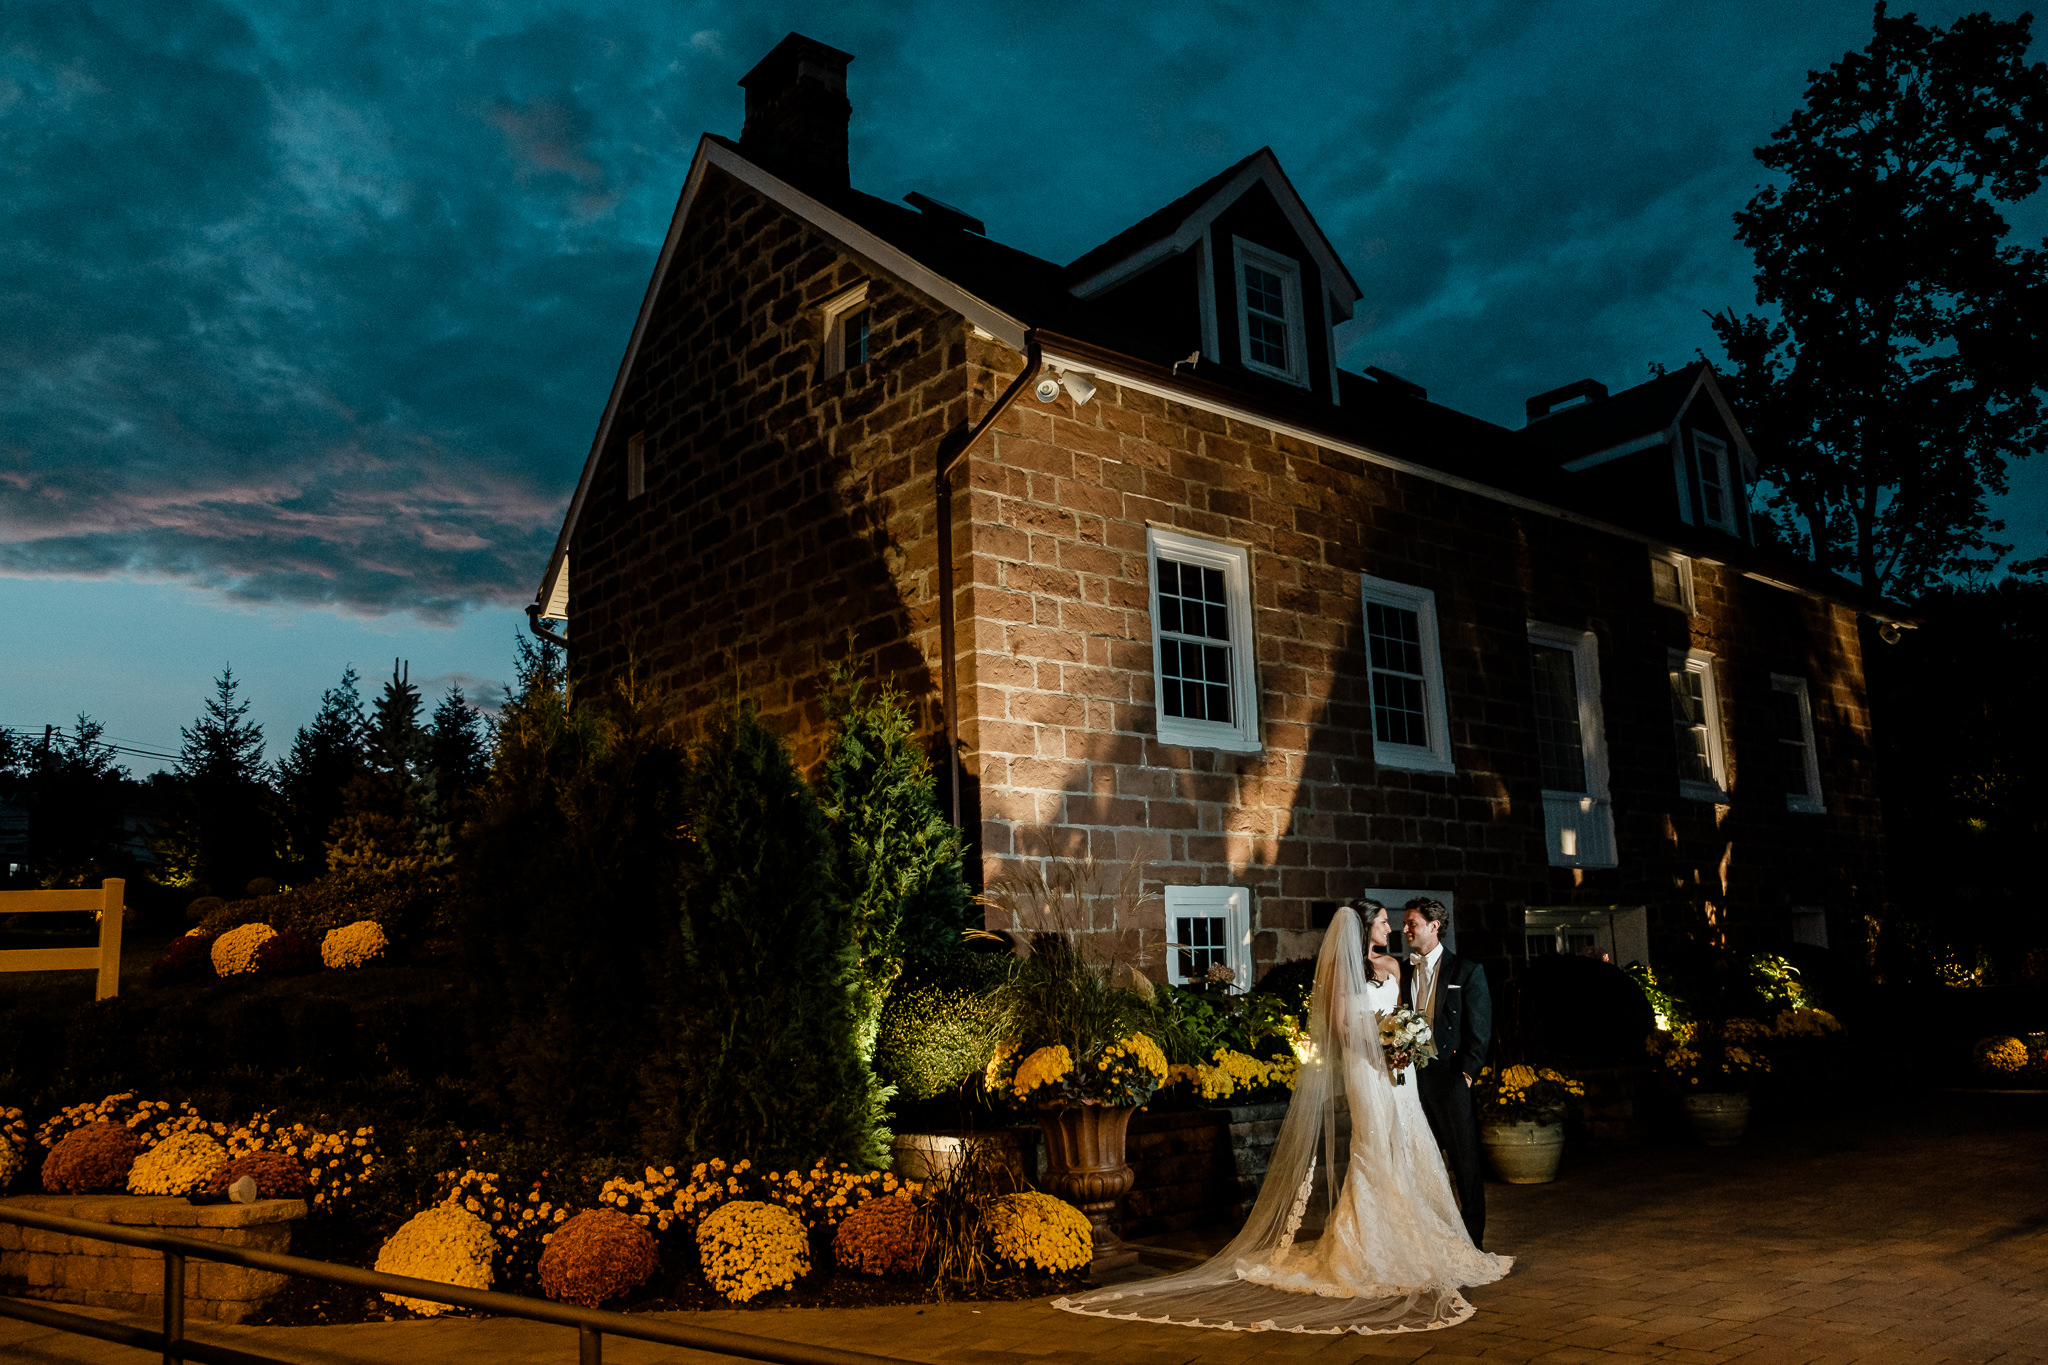 Photograph of Bride and Groom embracing under a blue dark sky at the historic cottage at The Gove with warm orange ambient light and fall decorations